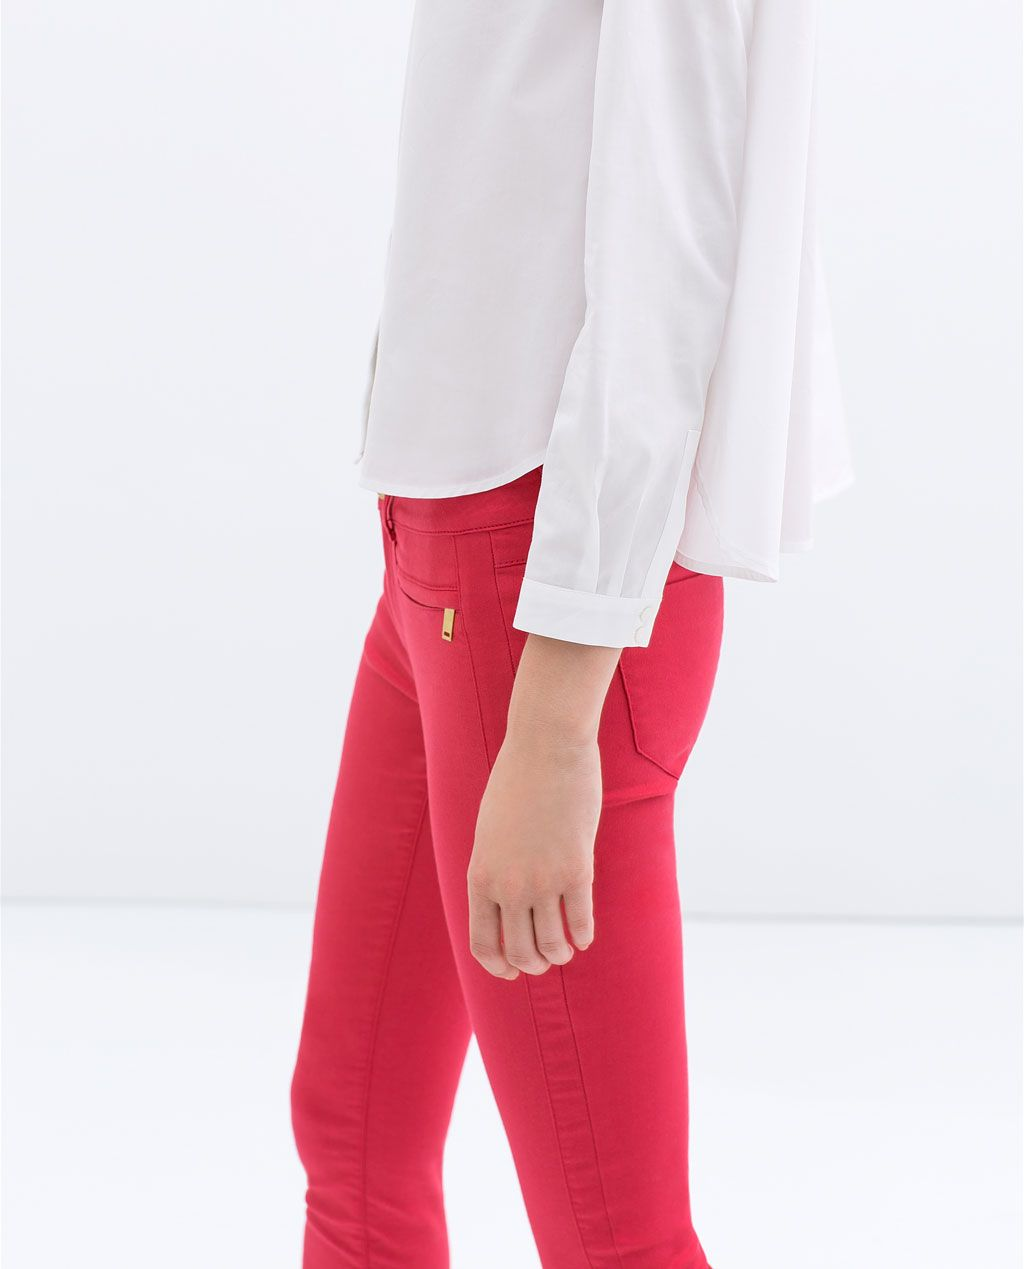 ZARA - NEW THIS WEEK - SUPERSTRETCH SKINNY TROUSERS